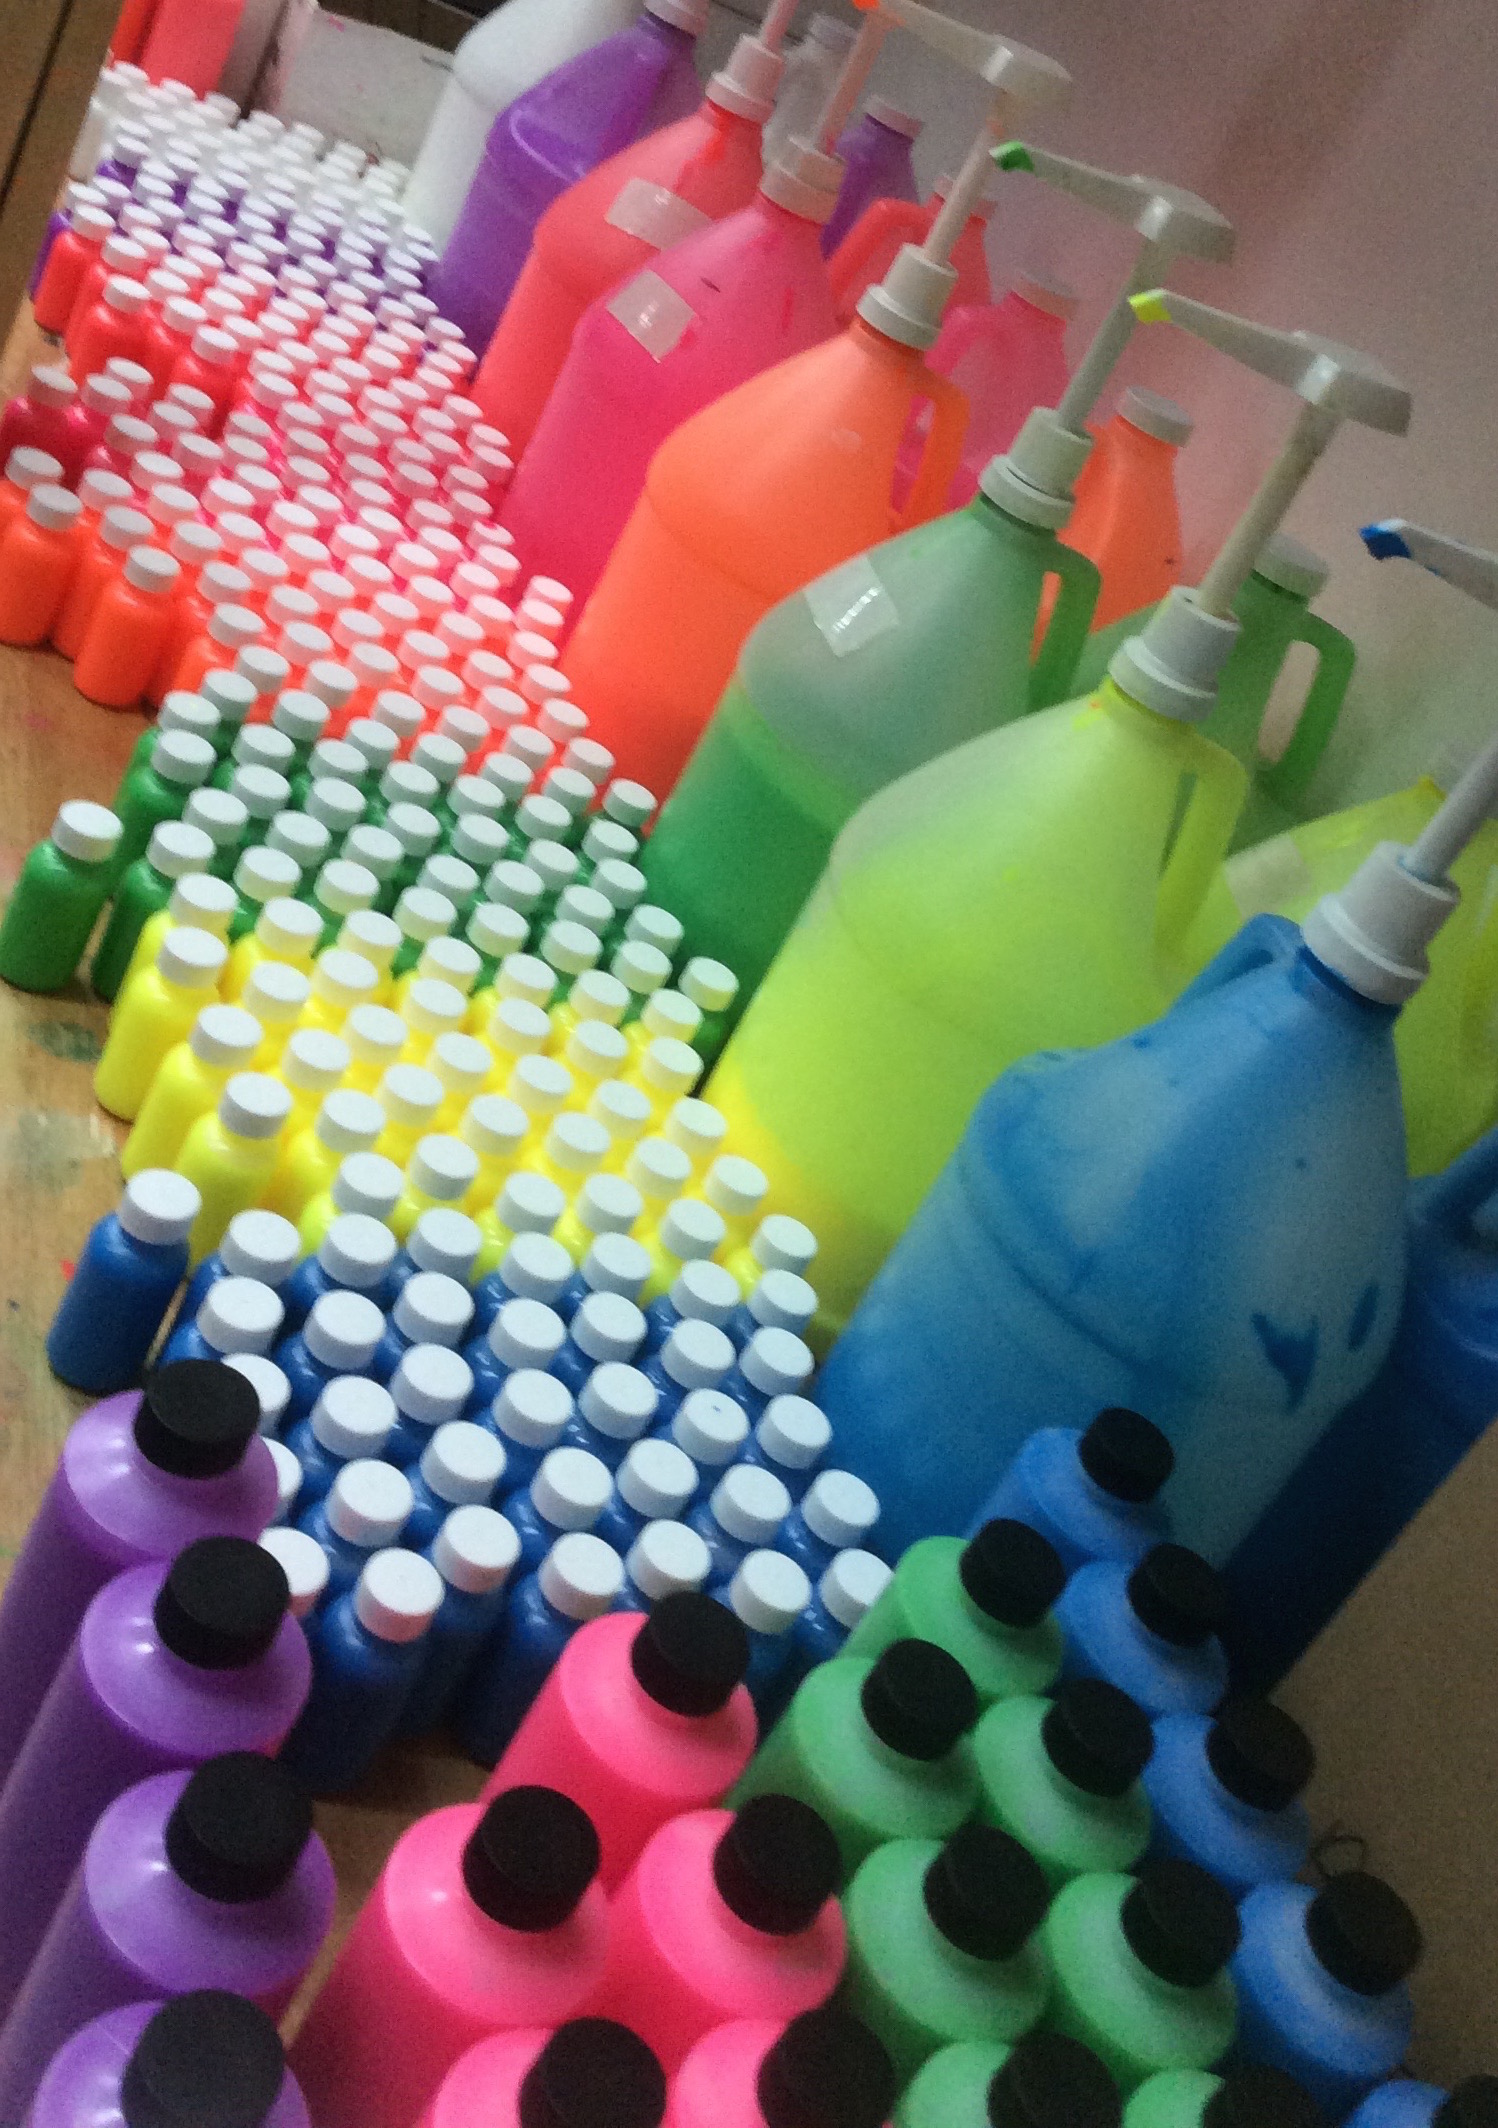 paint-party-glow-uv-paint-bottle.jpg